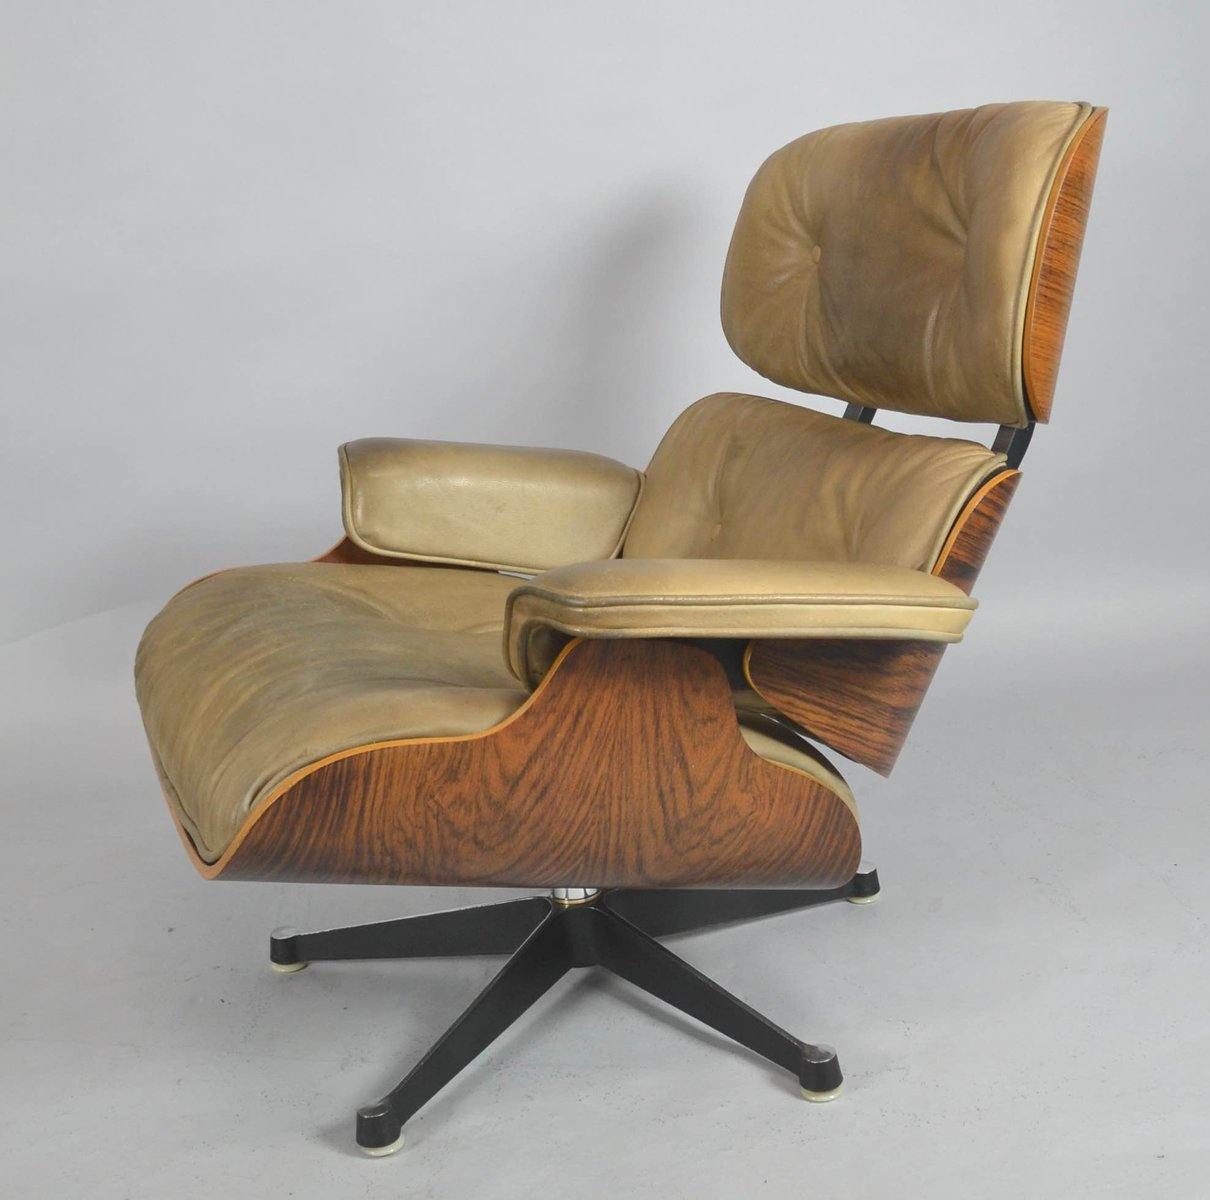 mid century lounge chair by charles ray eames for fehlbaum contura vitra for sale at pamono. Black Bedroom Furniture Sets. Home Design Ideas